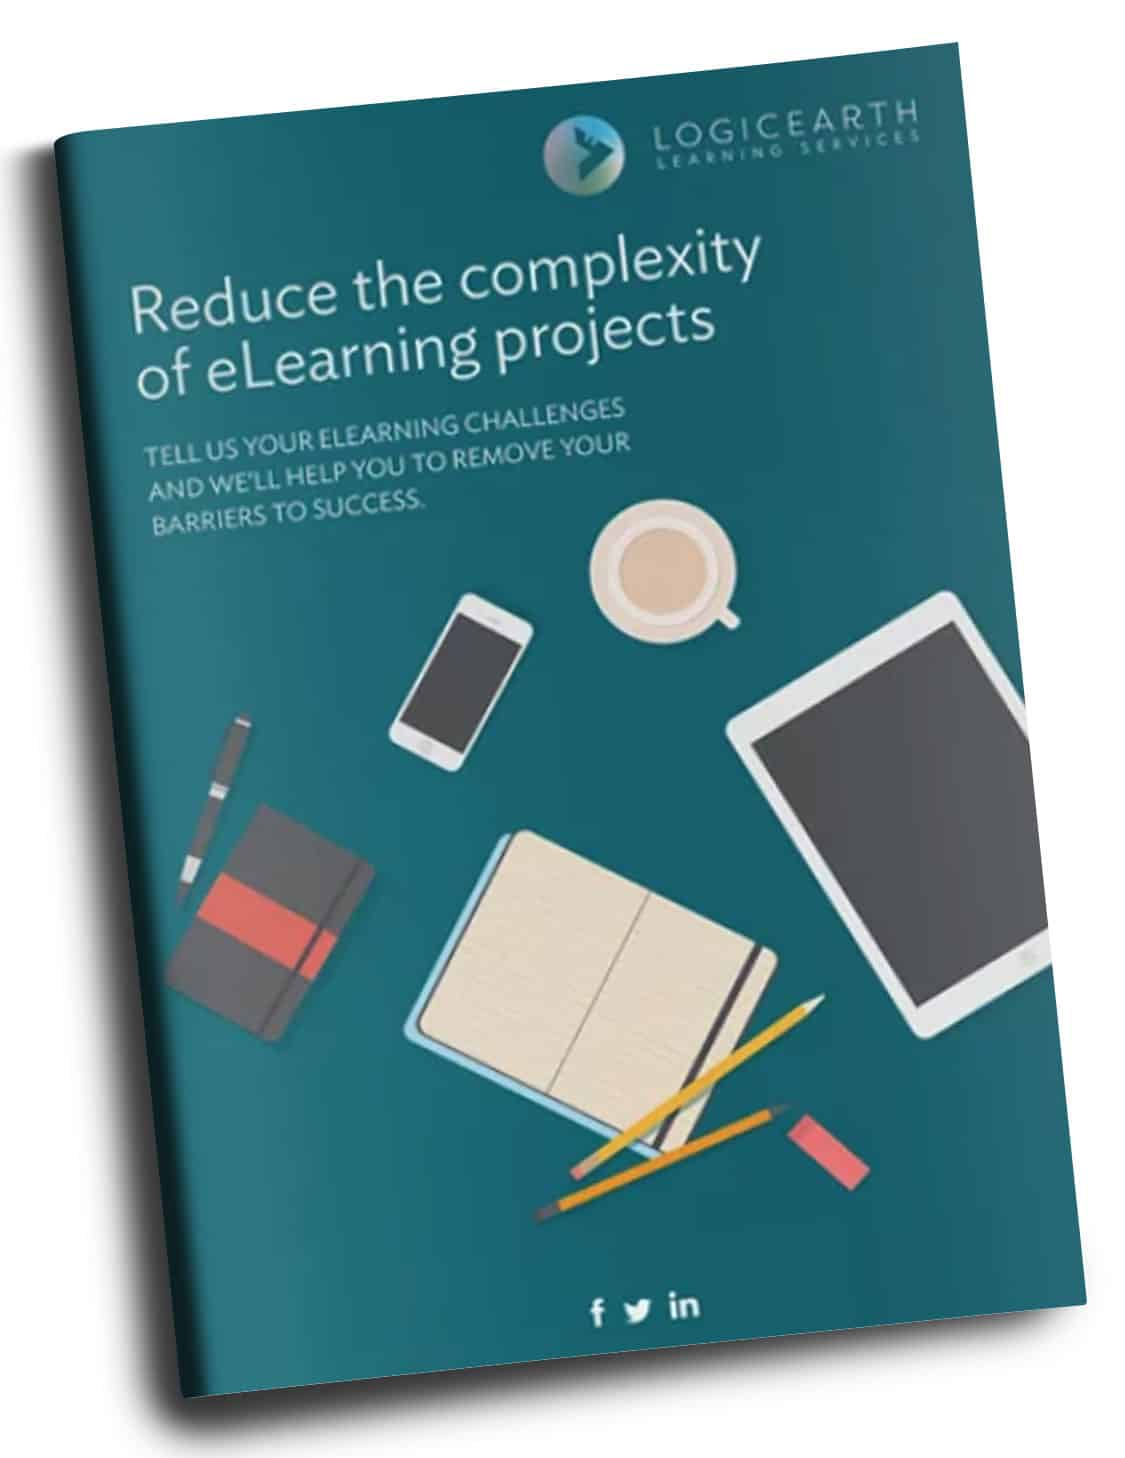 reduce complexity of elearning project